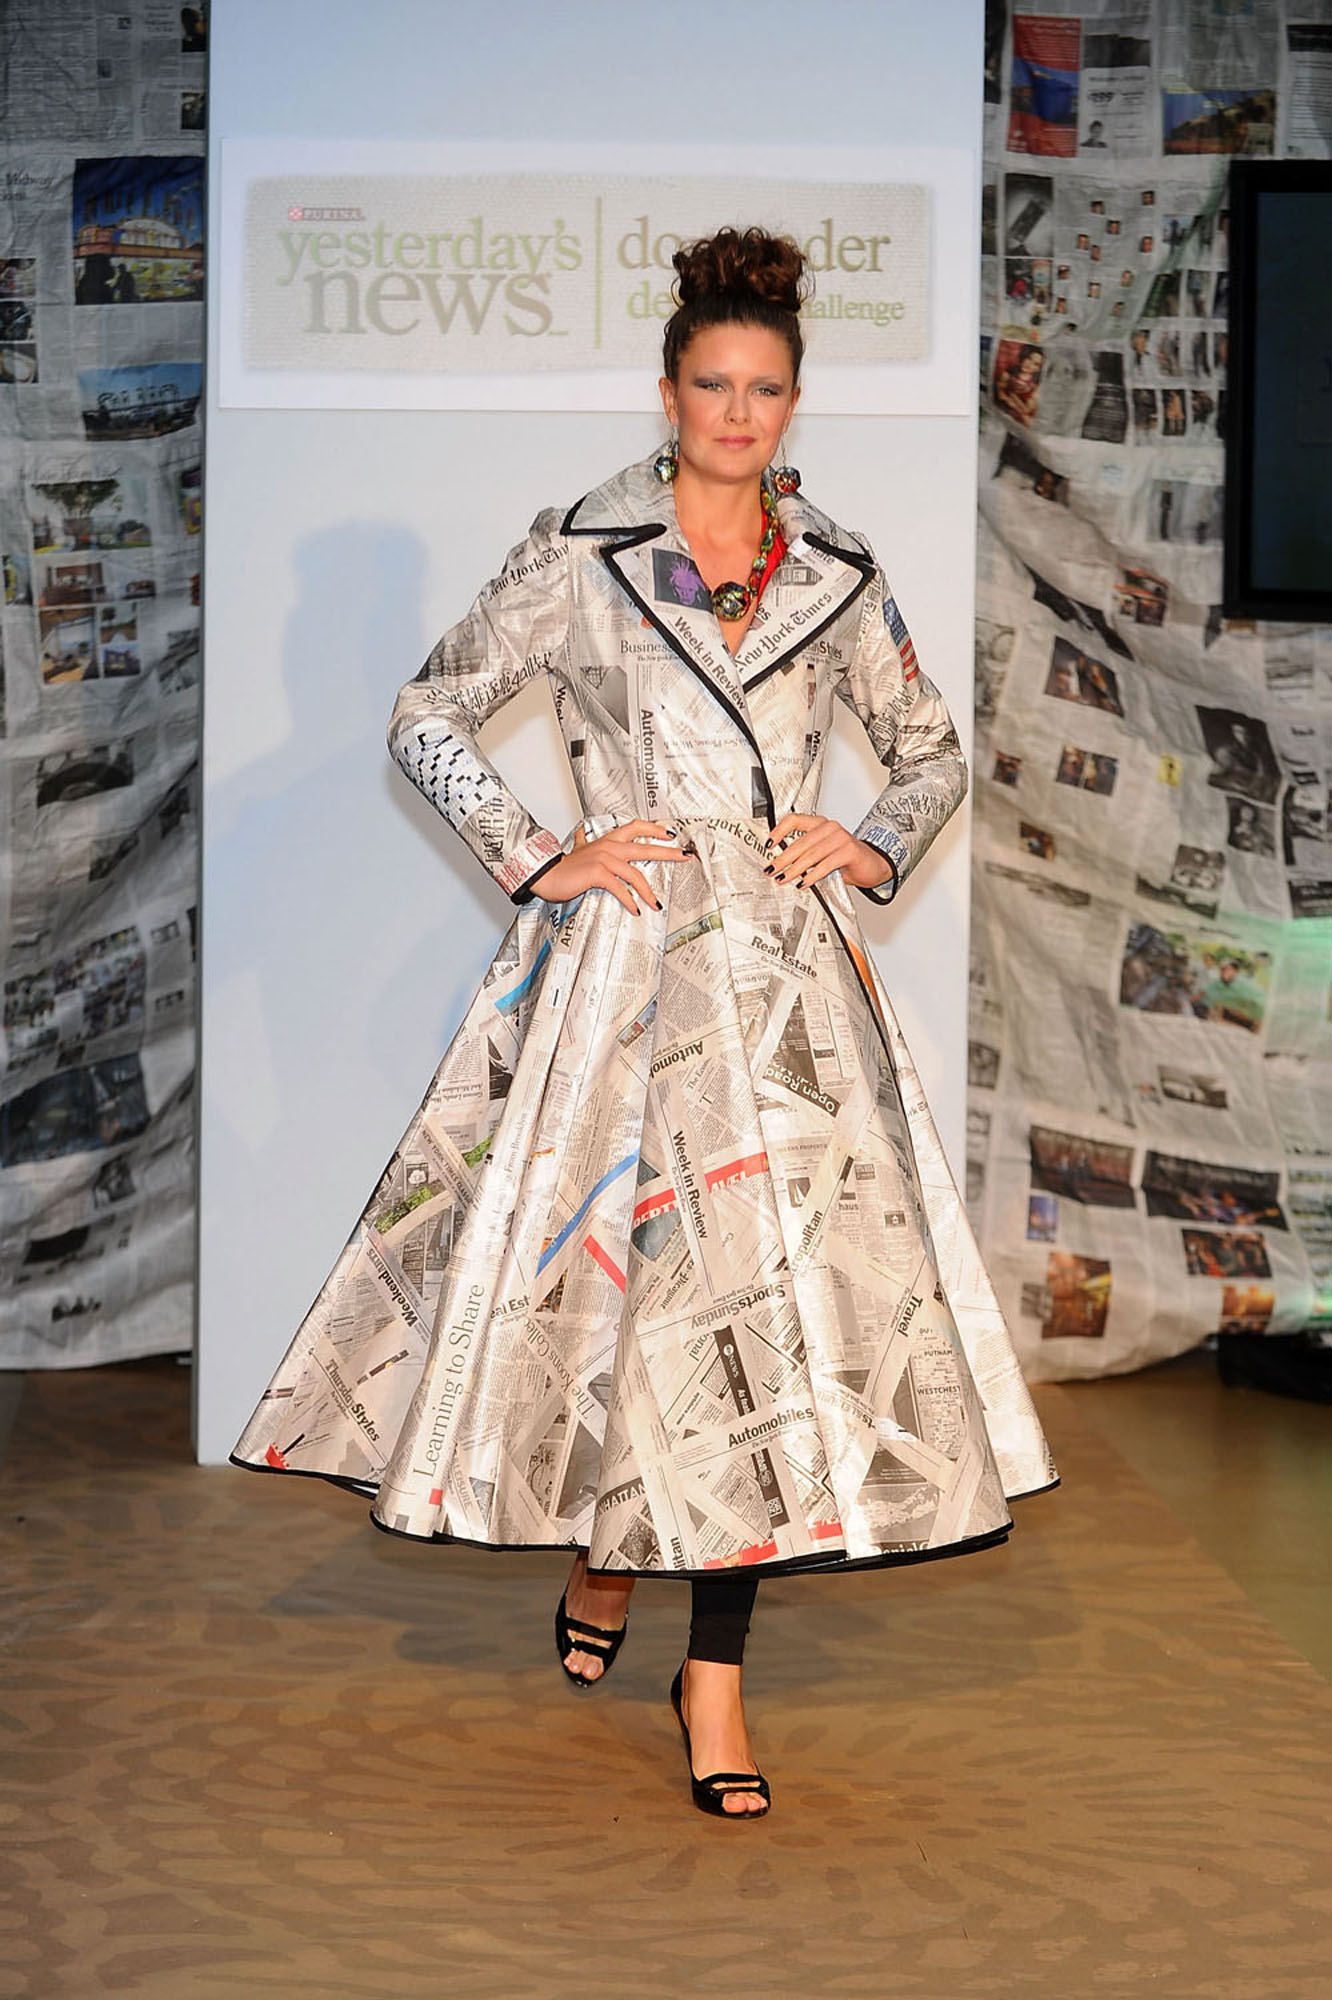 Newspaper-Inspired Fashion For A Good Cause